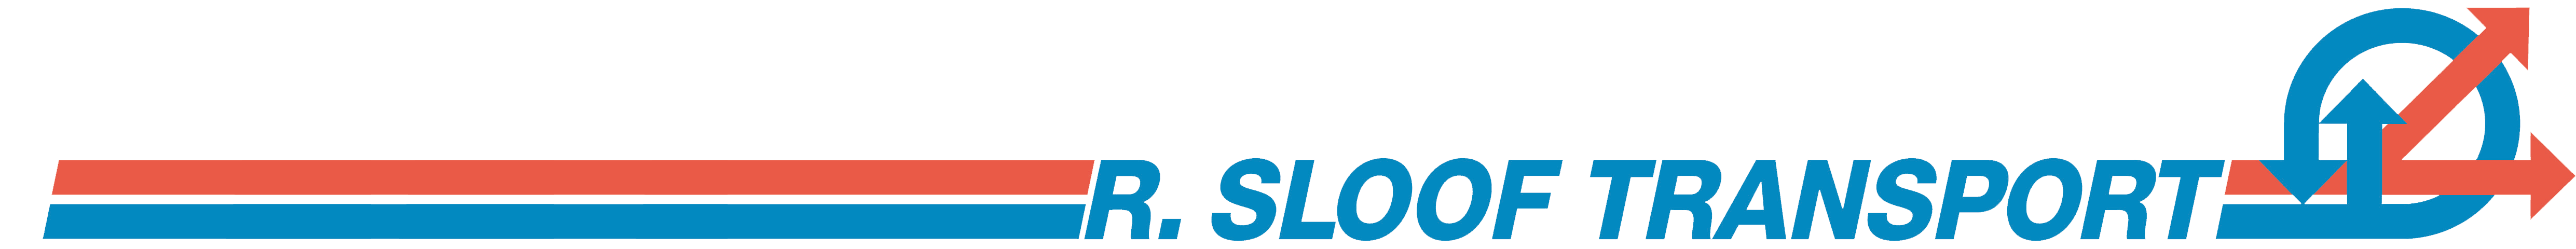 Slooftransport logo clear